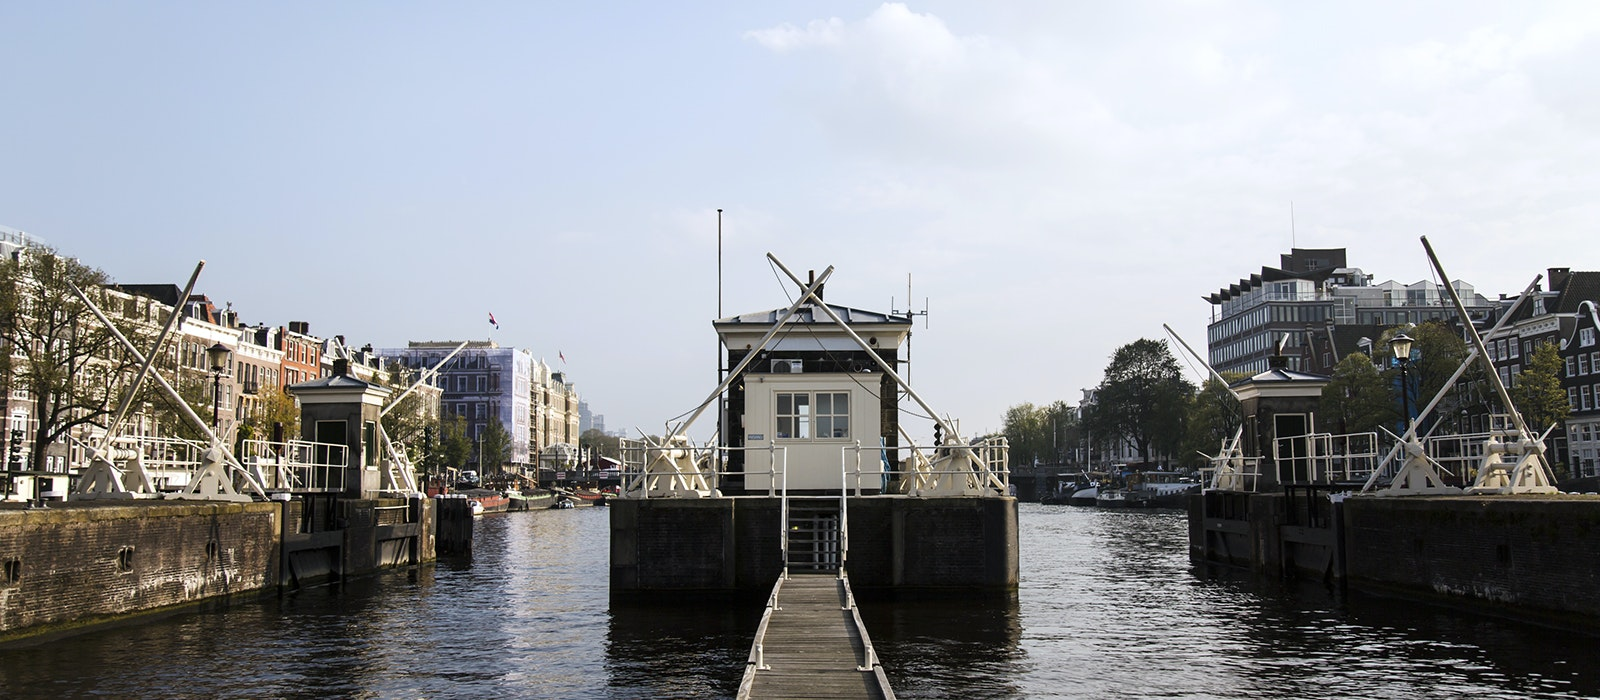 All of the 28 stand-alone units at the Sweets Hotel in Amsterdam are located within these former bridge keeper homes, located right on the canals.